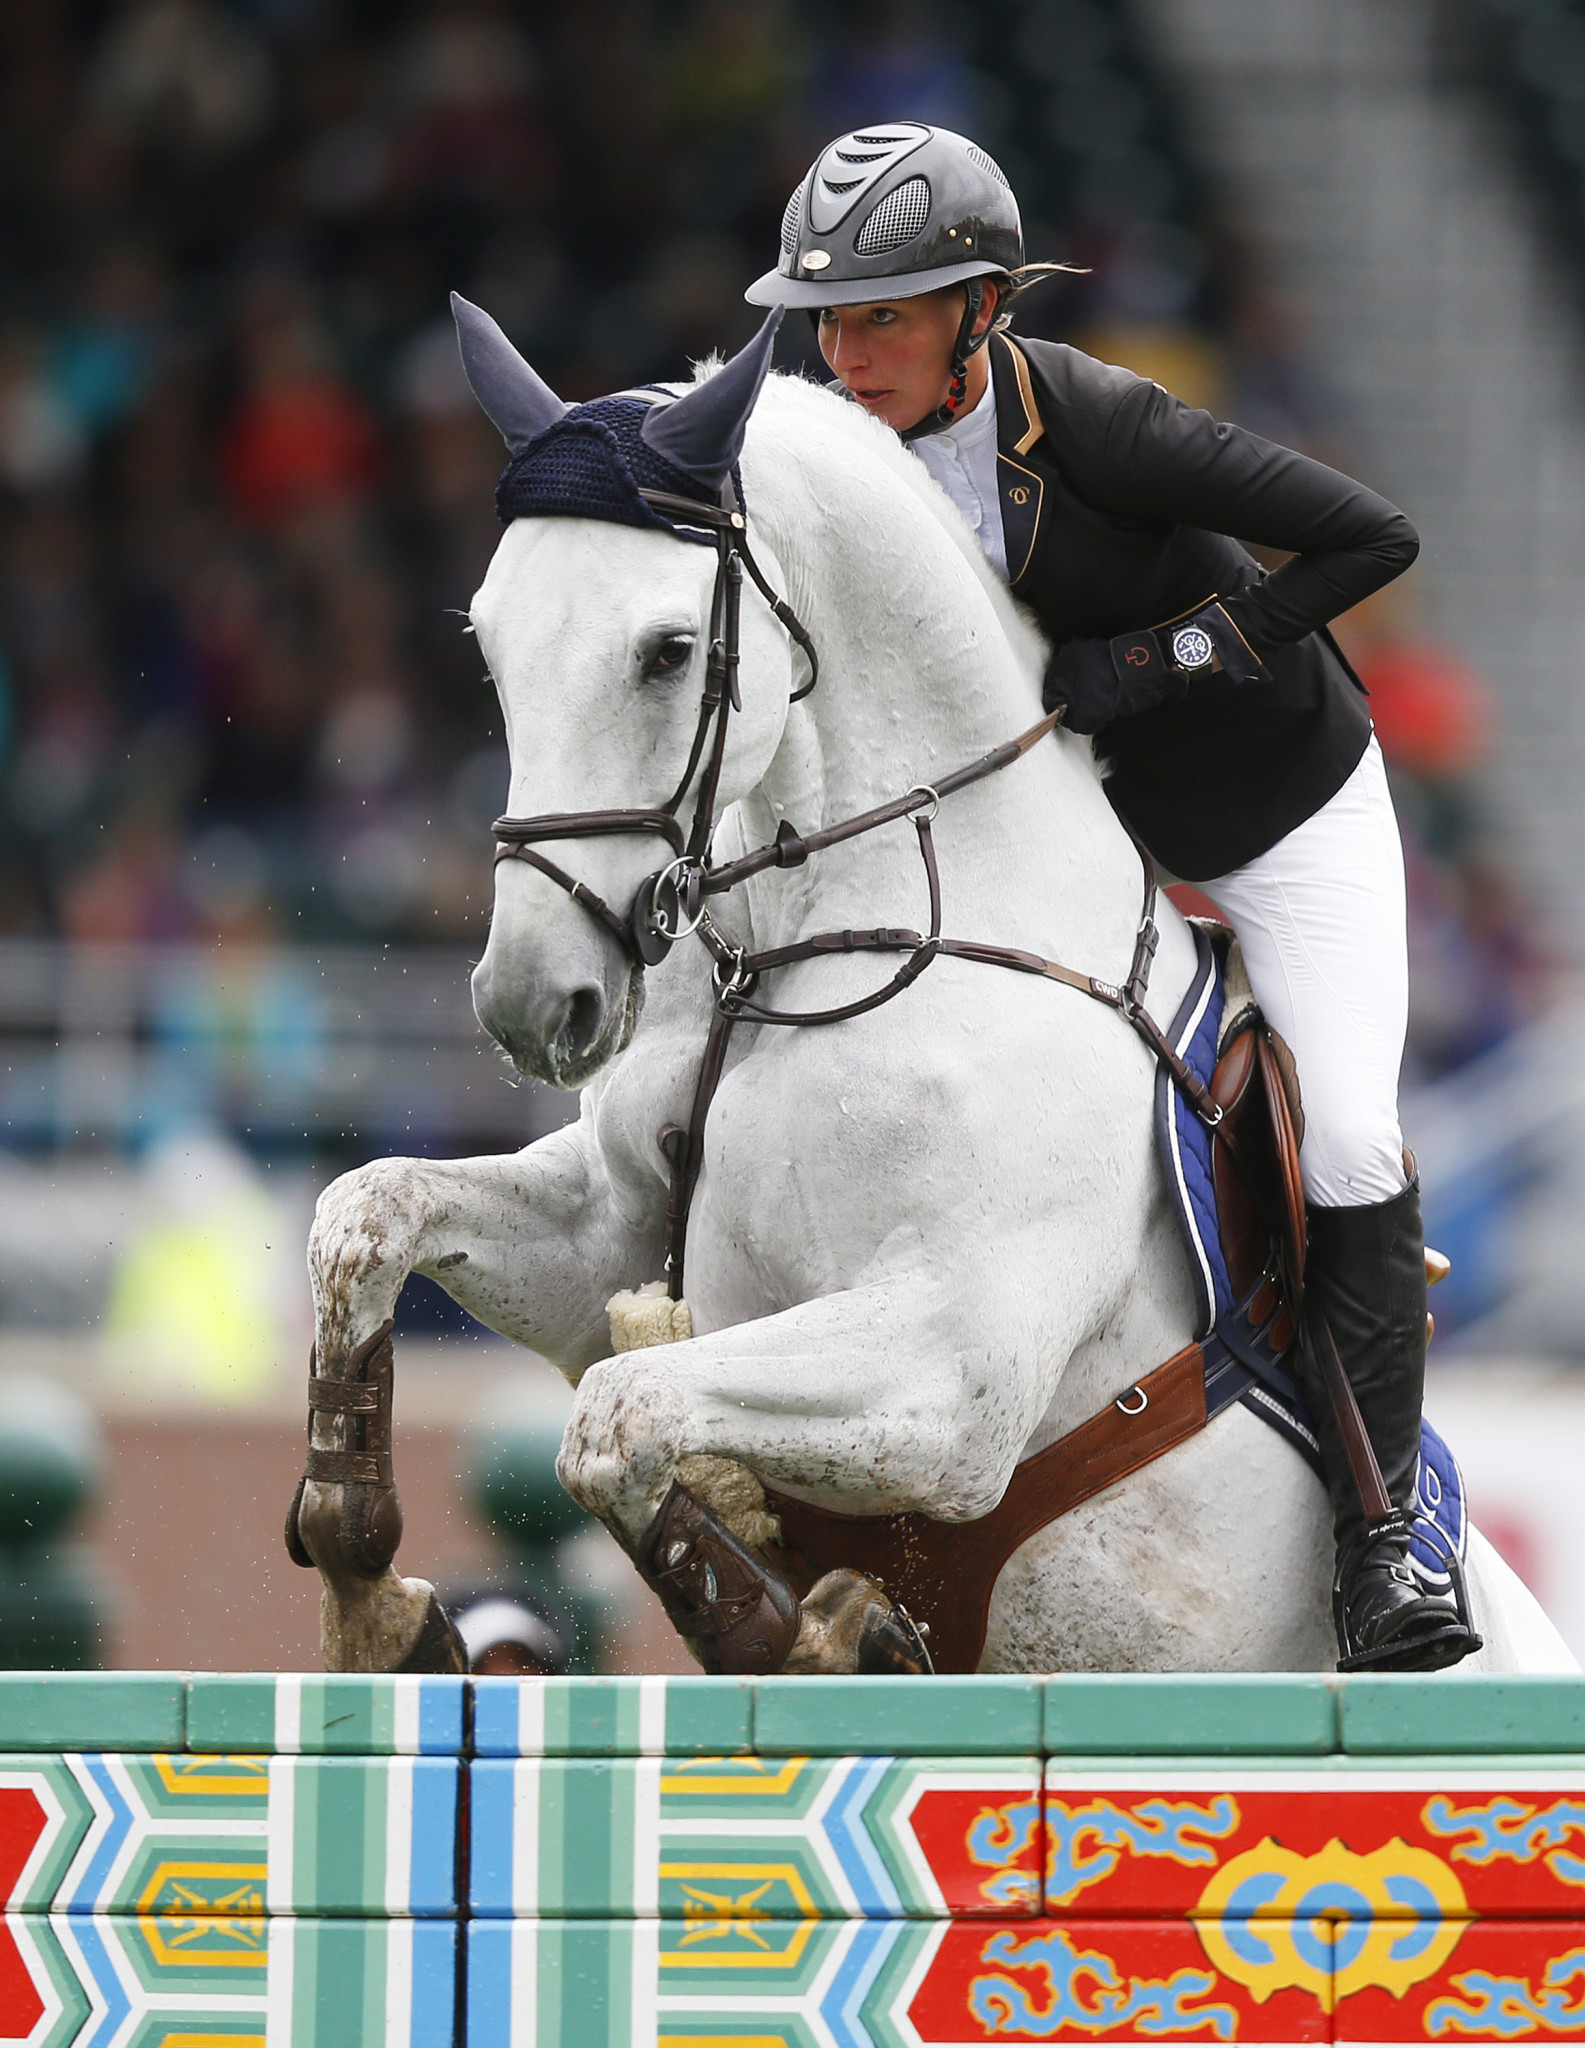 Nadja Peter Steiner in action last year on another horse, Capuera II ©Getty Images